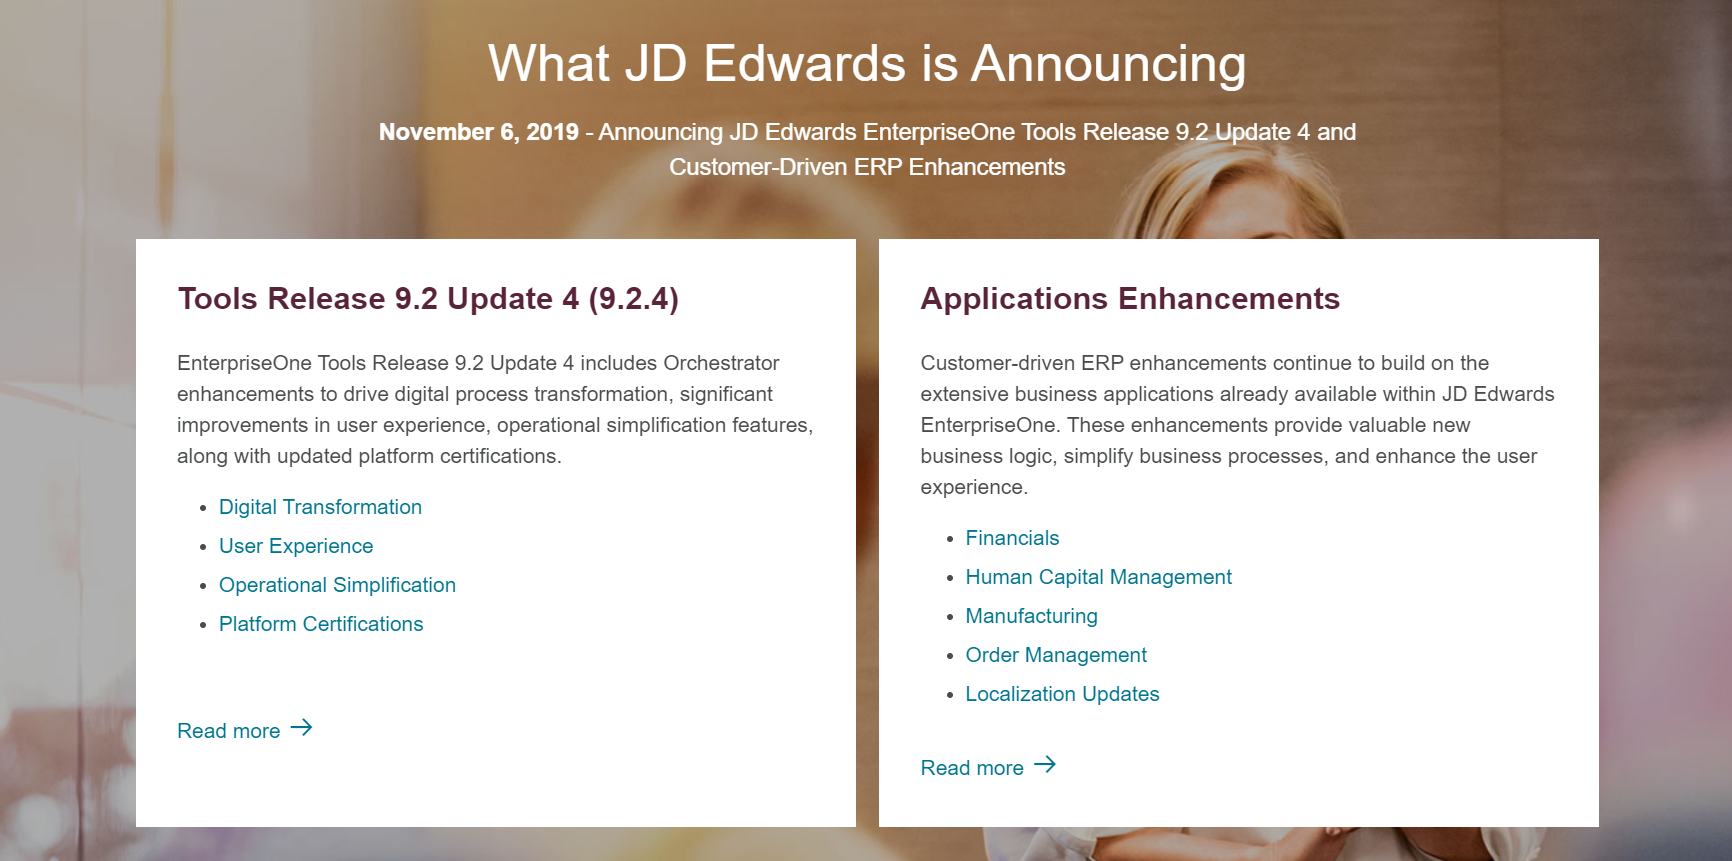 Announcing JD Edwards E1 Tools Release 9.2 Update 4